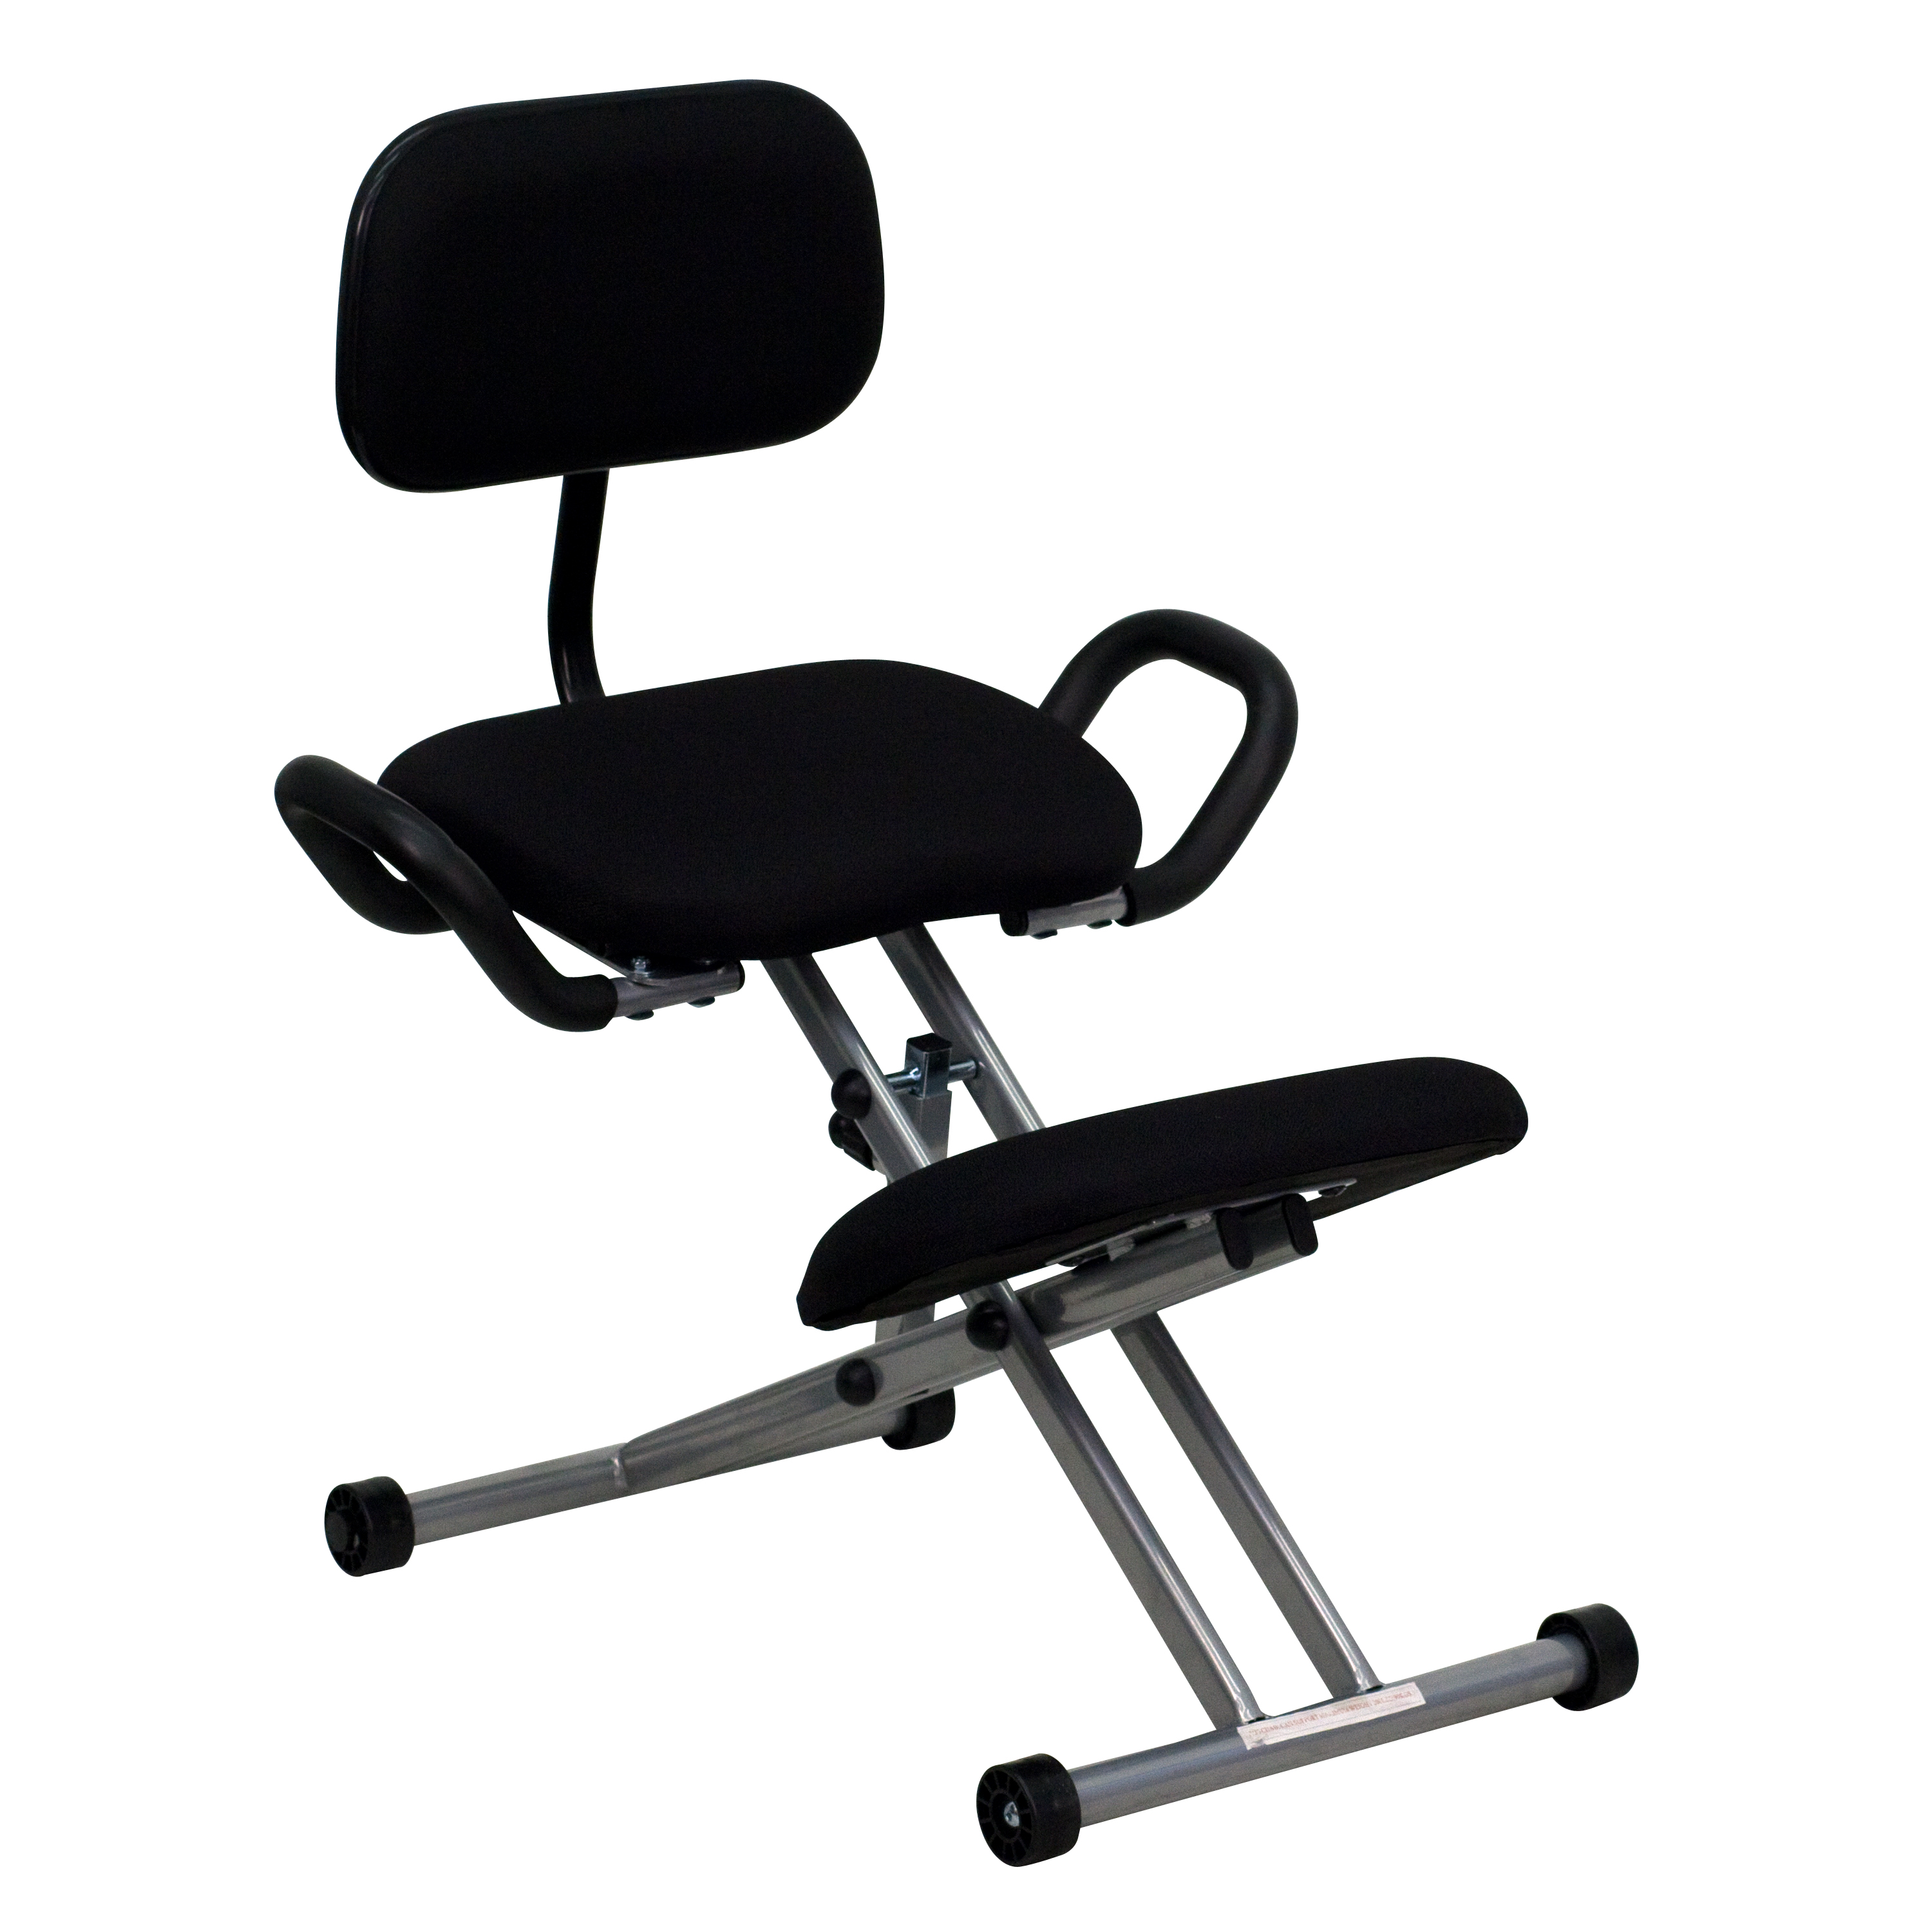 Ergonomic Chair Kneeling Ergonomic Kneeling Chair